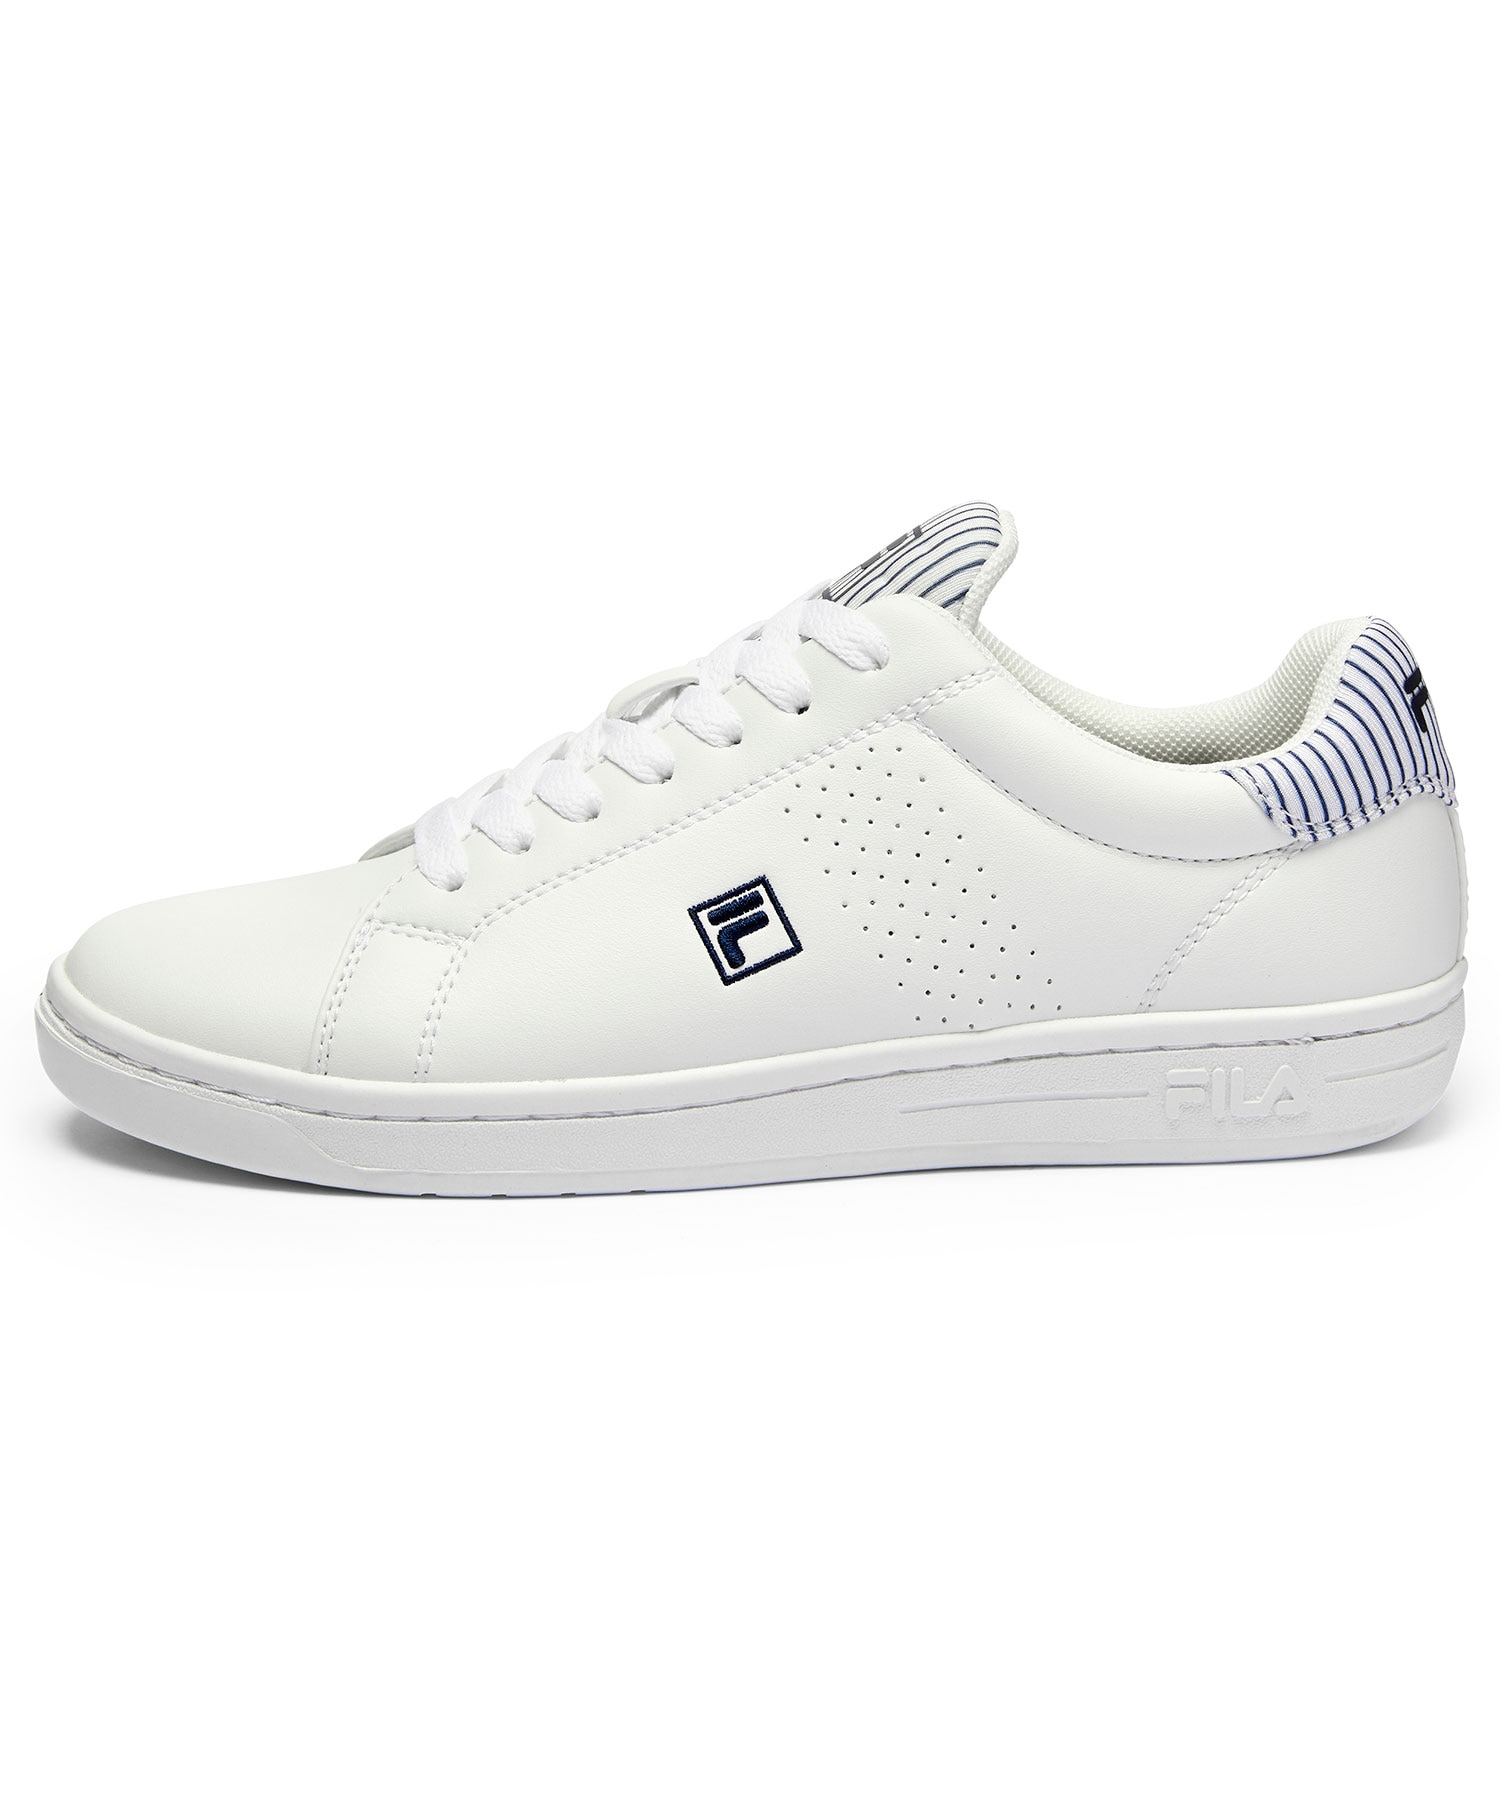 Fila Cross court